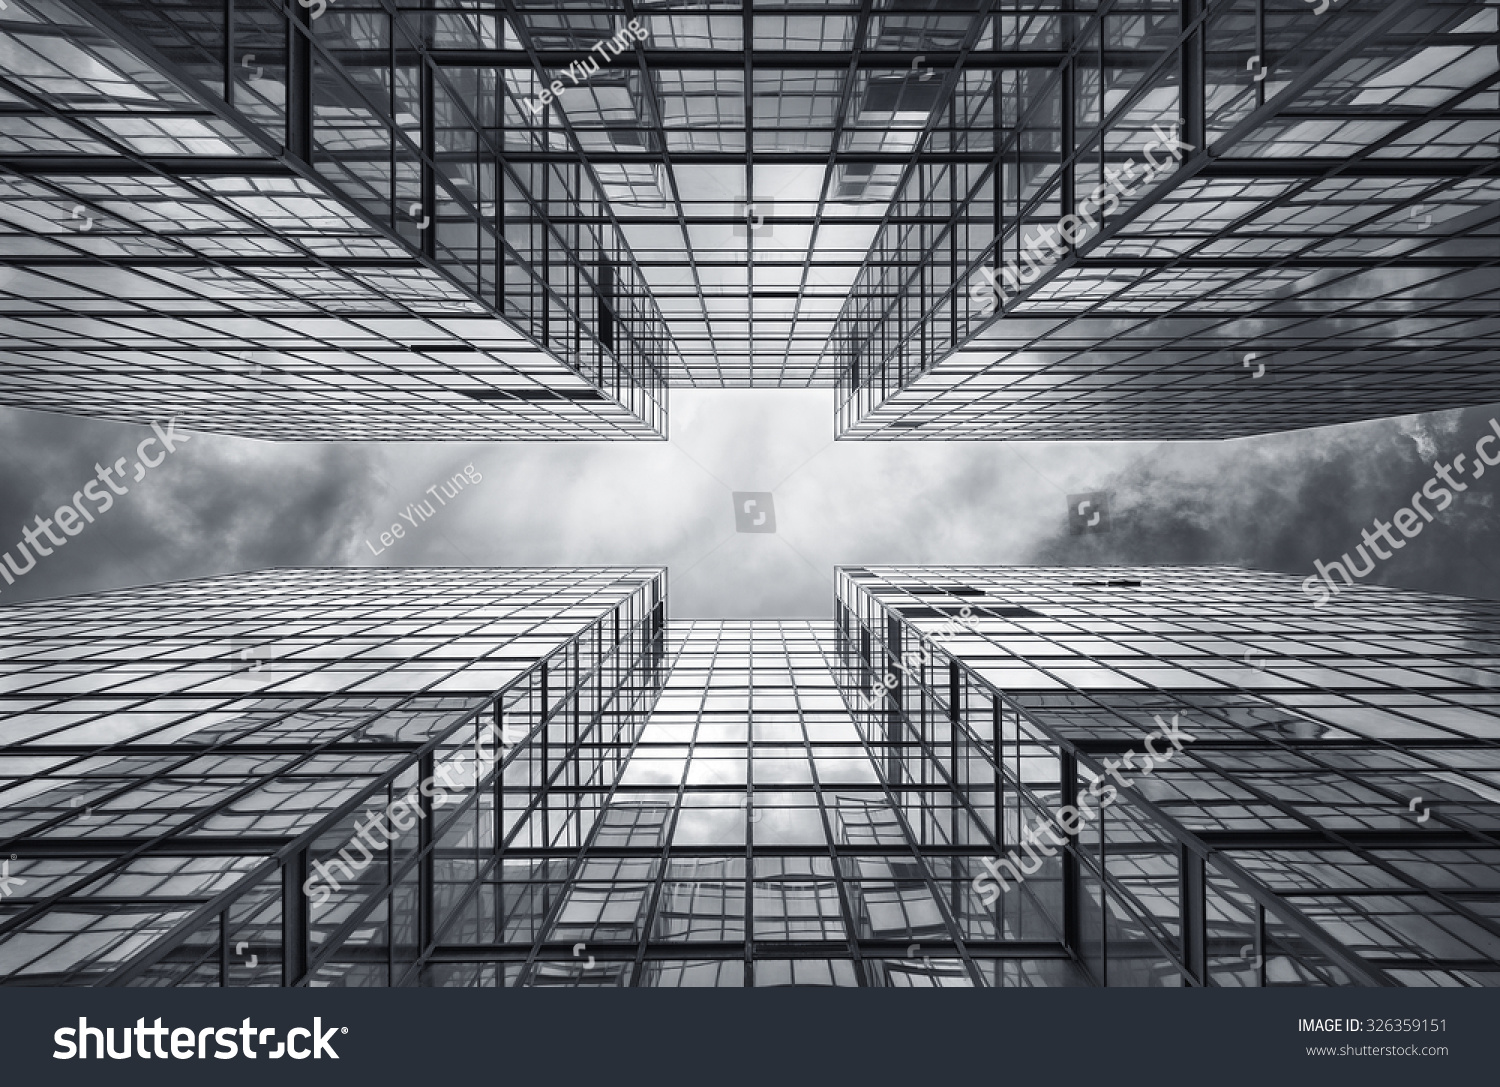 Building Abstract Stock Photo 326359151 : Shutterstock